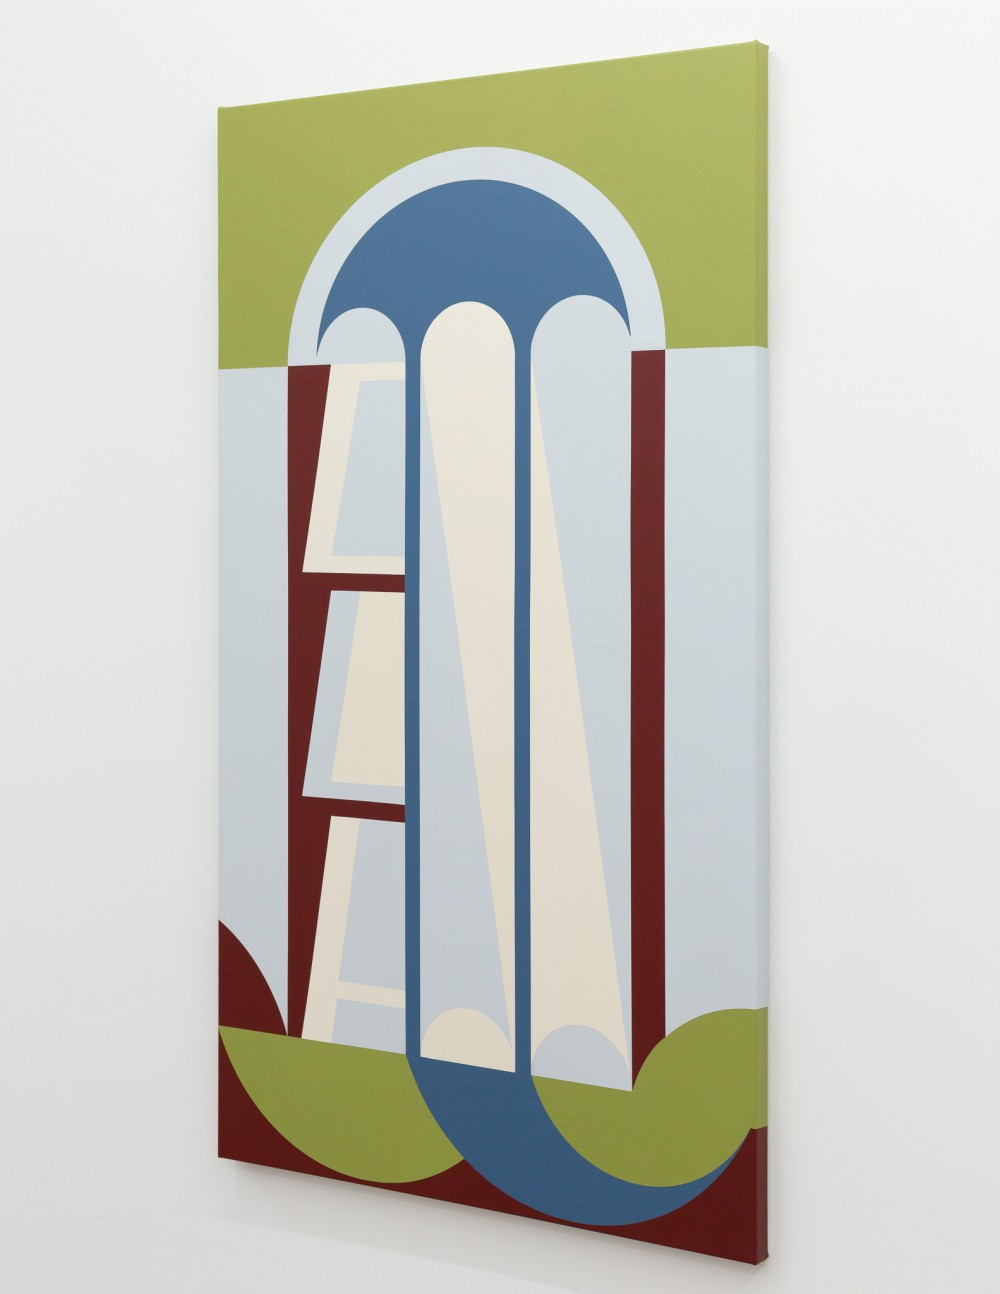 The work Ella Sutherland has generously contributed to *When The Dust Settles*:   Ella Sutherland *Place Holder (Class)* 2020 acrylic on linen 1525 x 865 mm Courtesy of the artist and Sumer, Tauranga